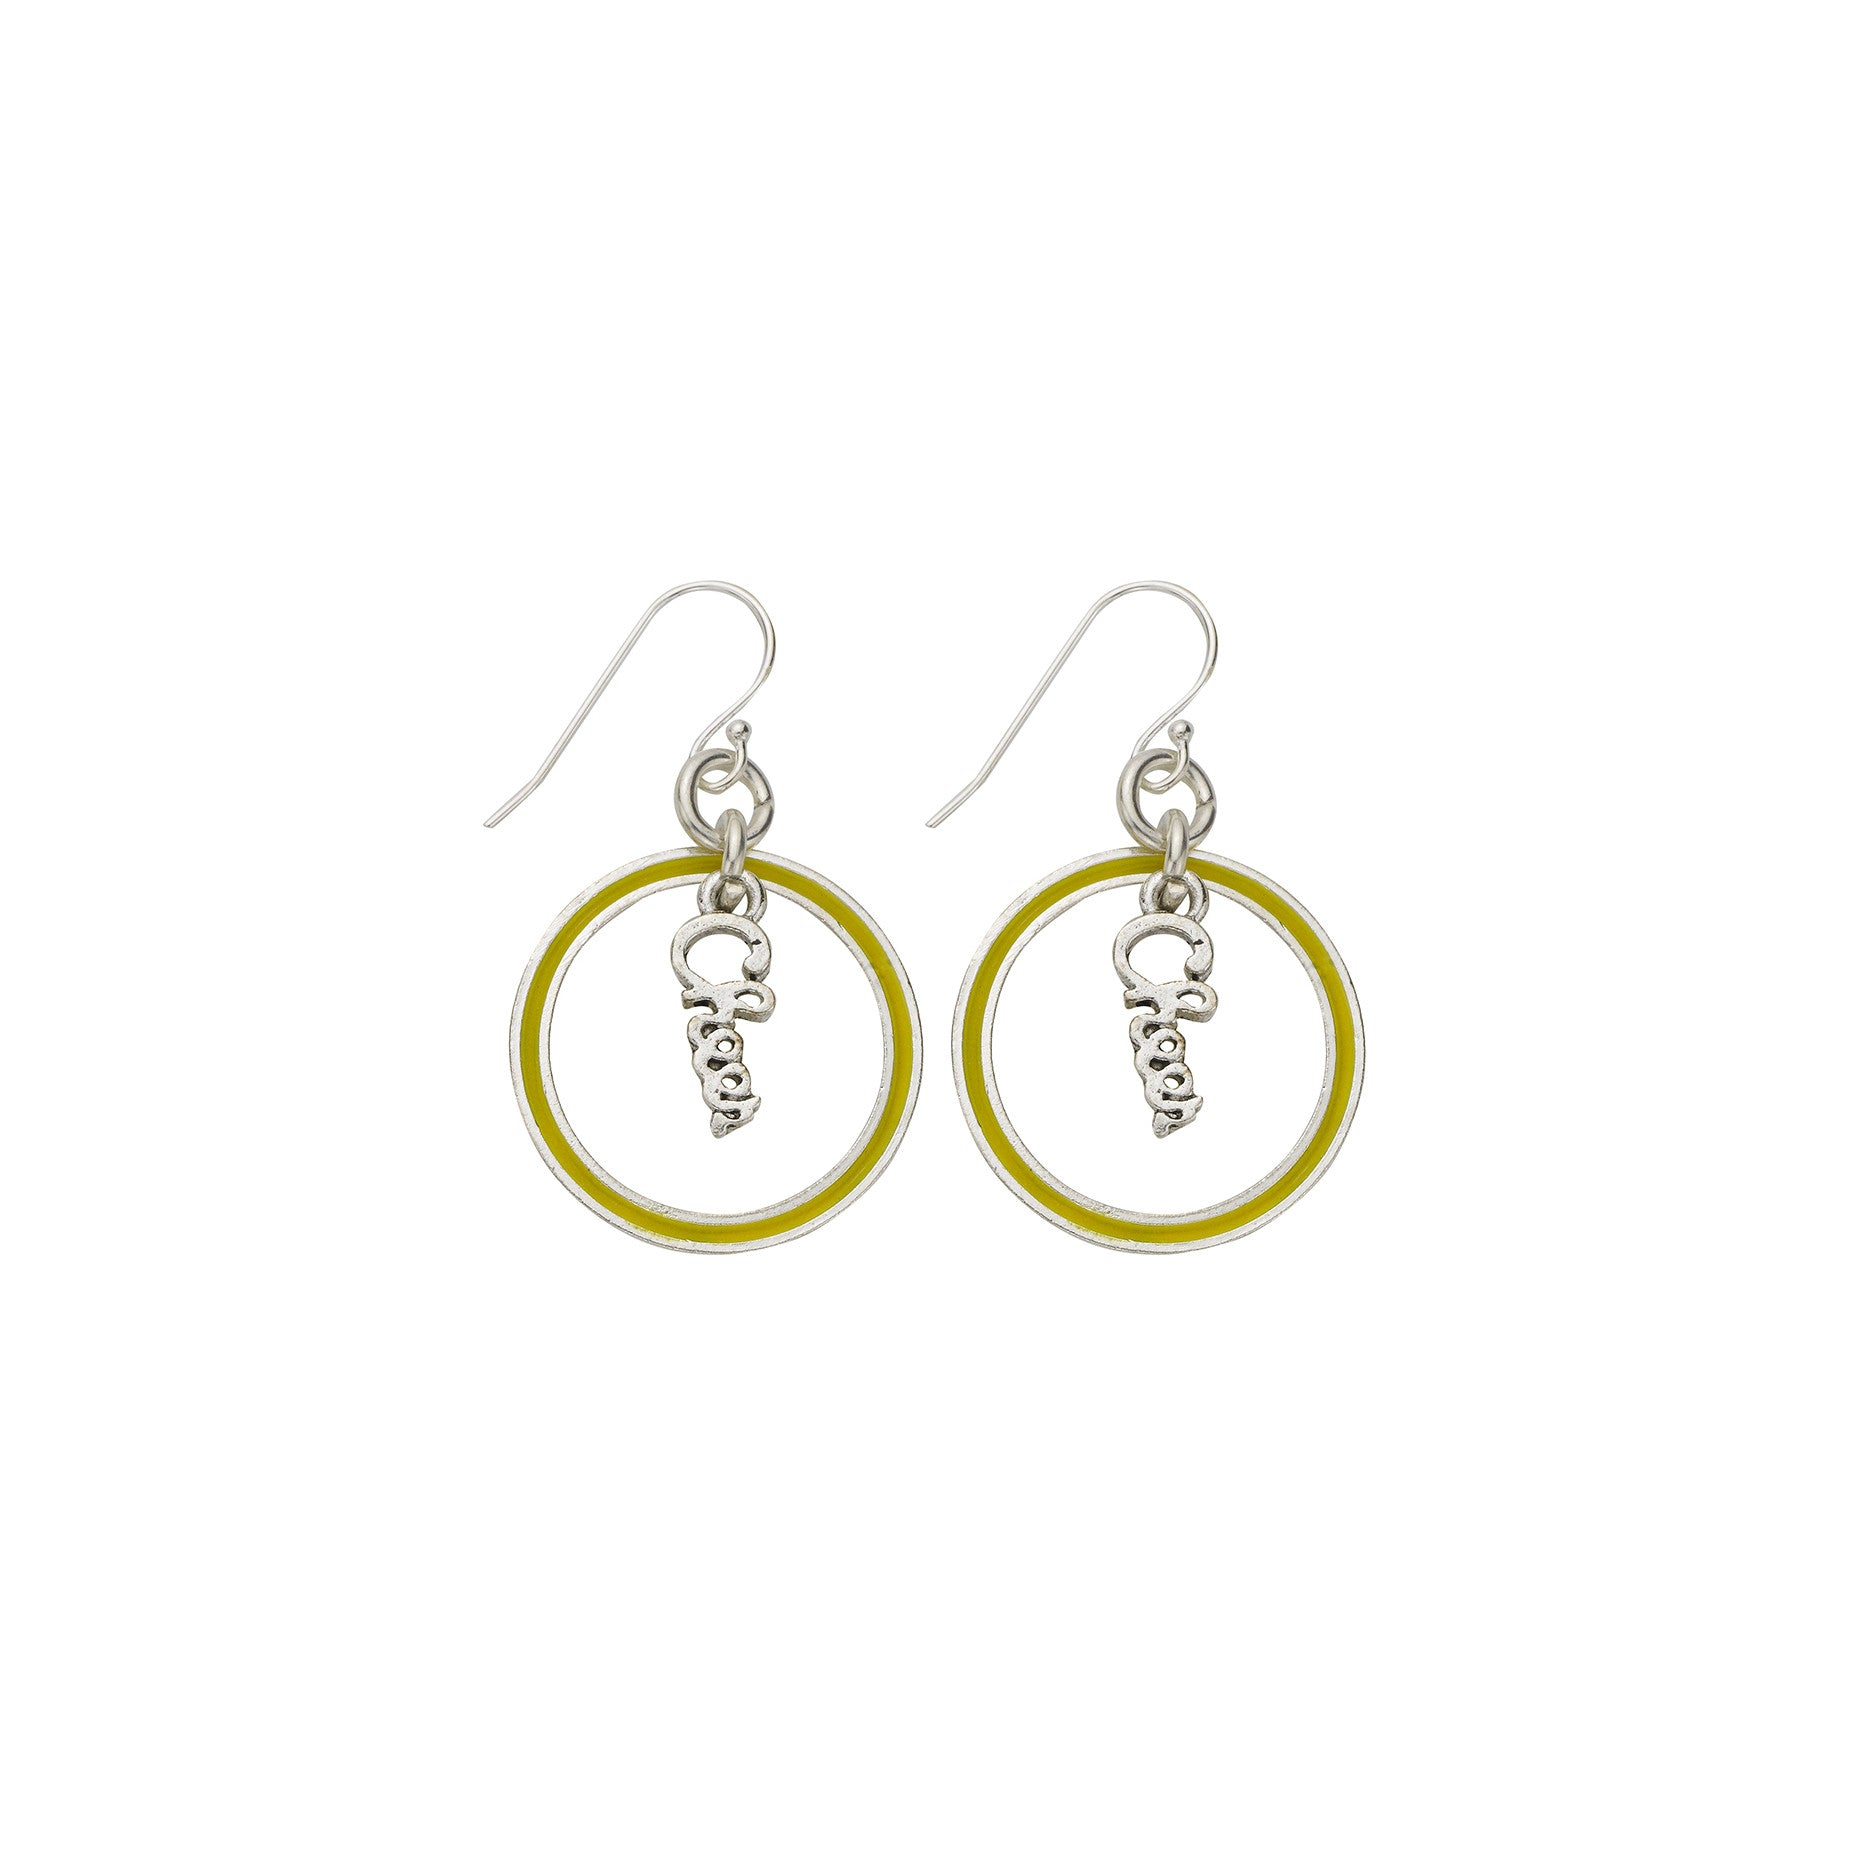 Neon Yellow Cheer Hoop Earring - SamandNan